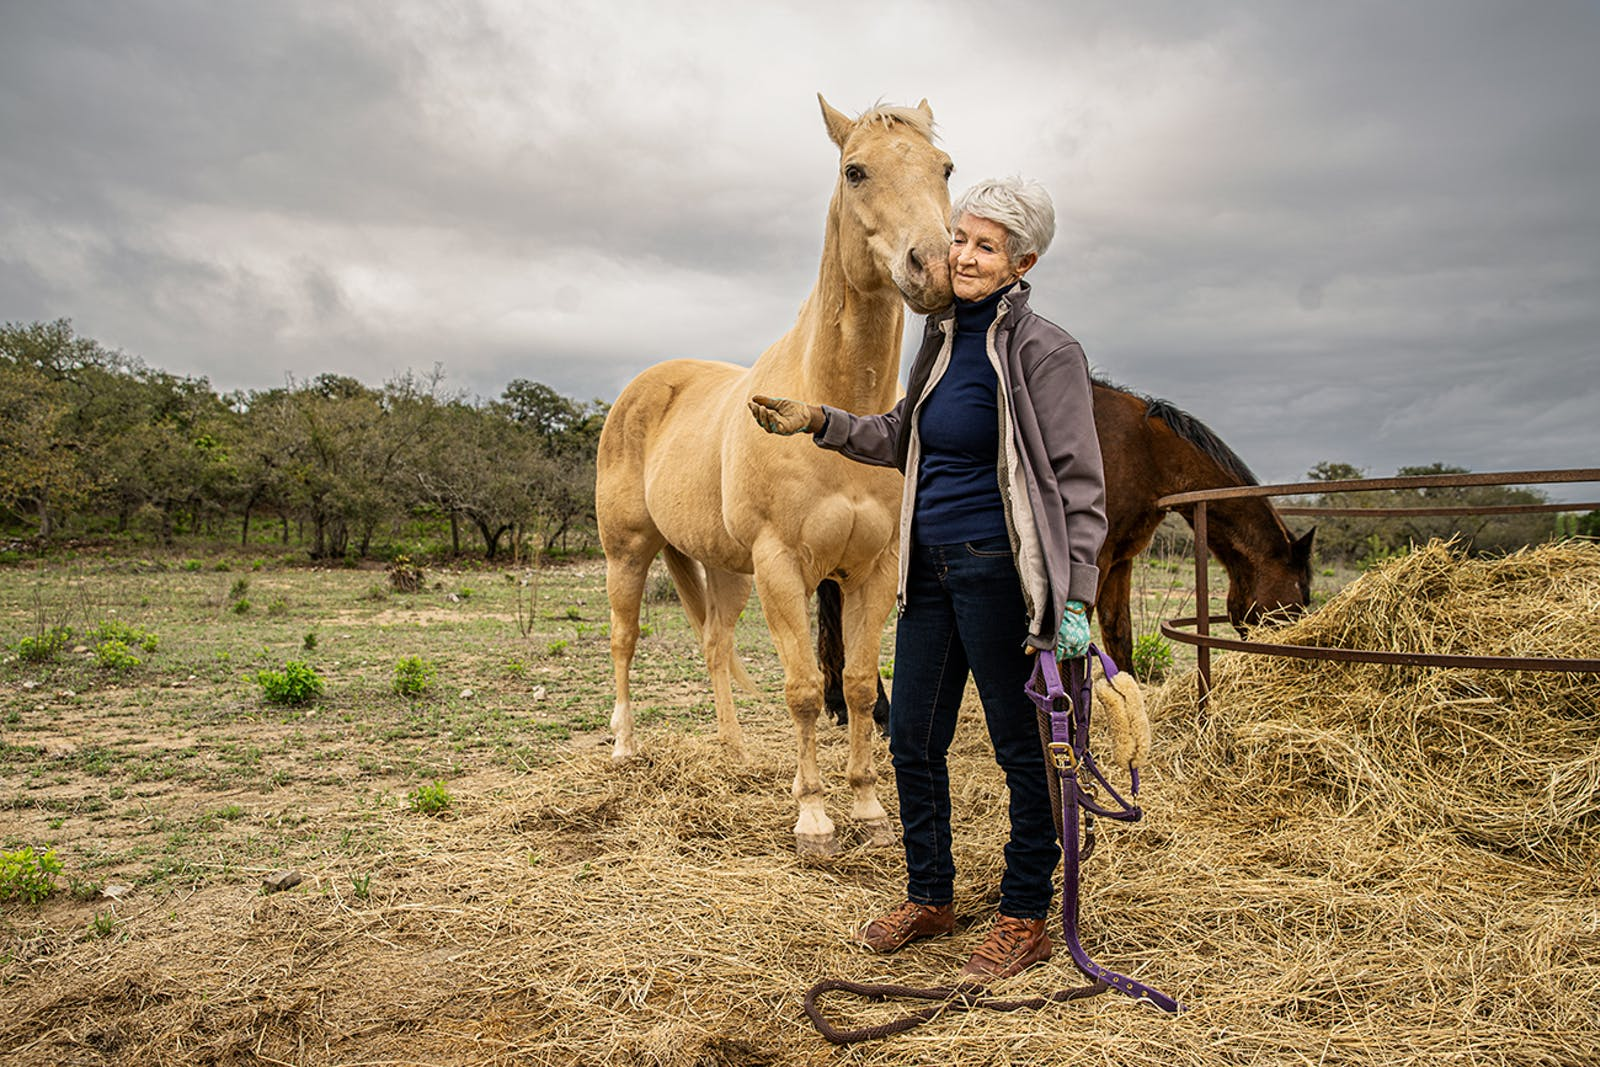 Paulette with horse